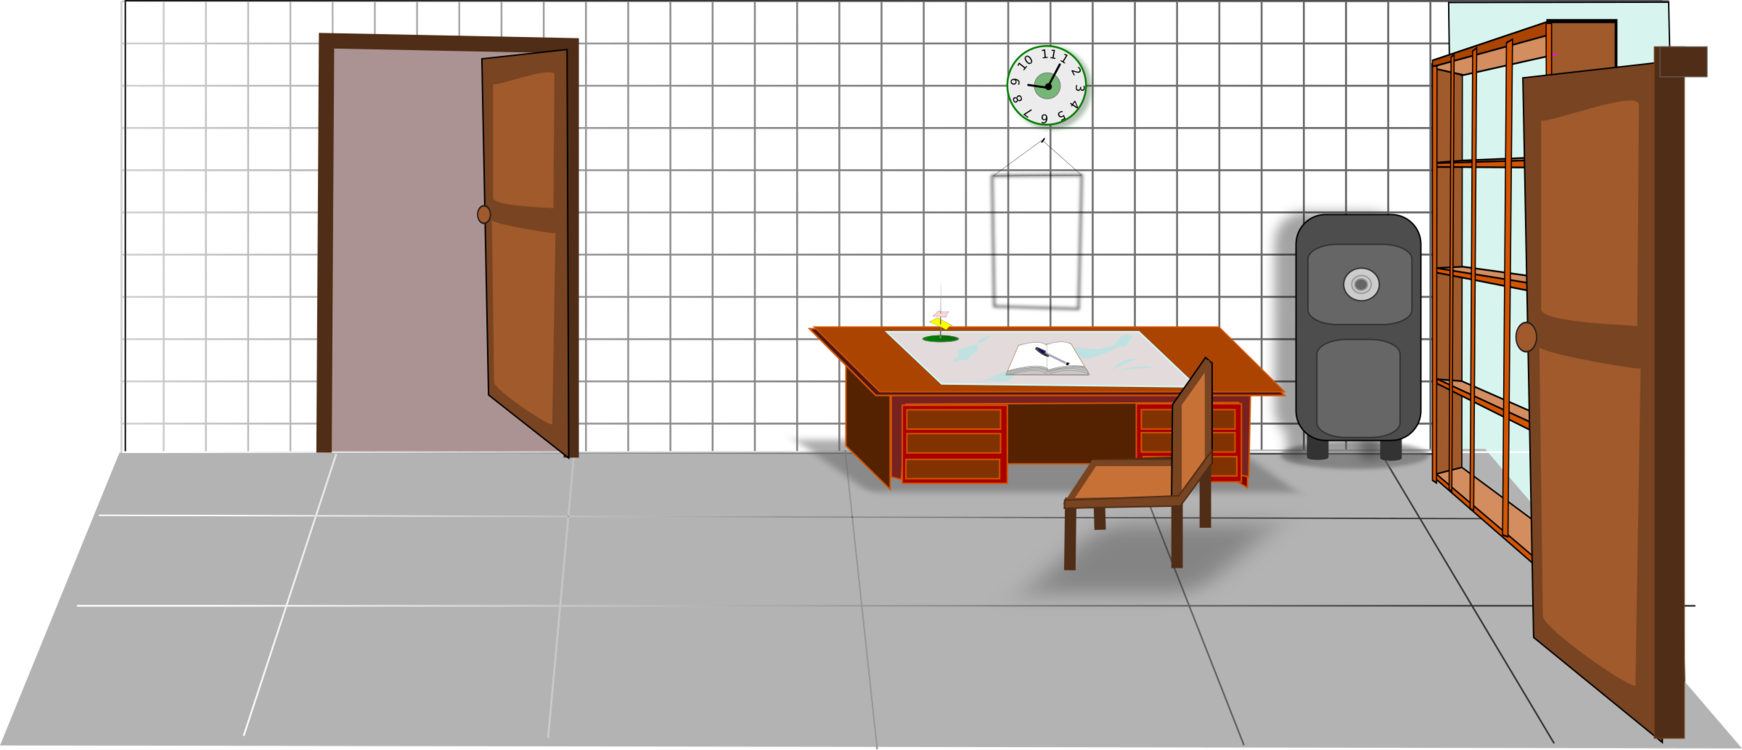 Antigo Computer Icons Interior Design Services Floor Cartoon Free